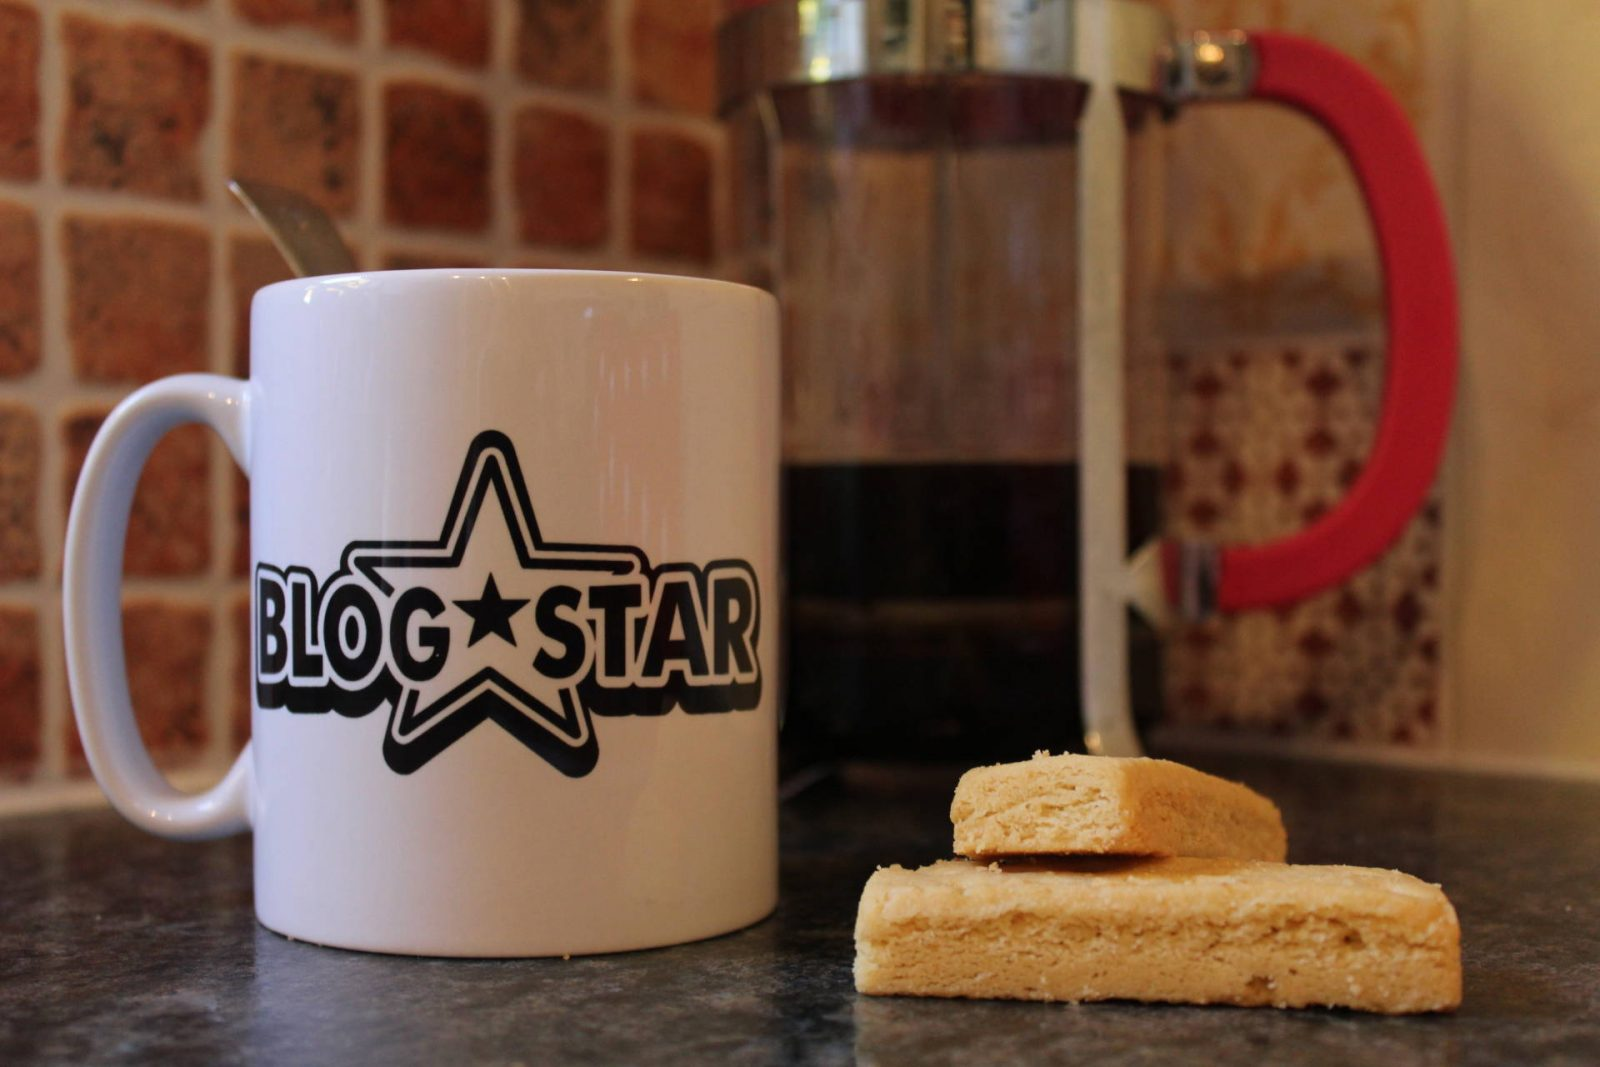 blog star mugs